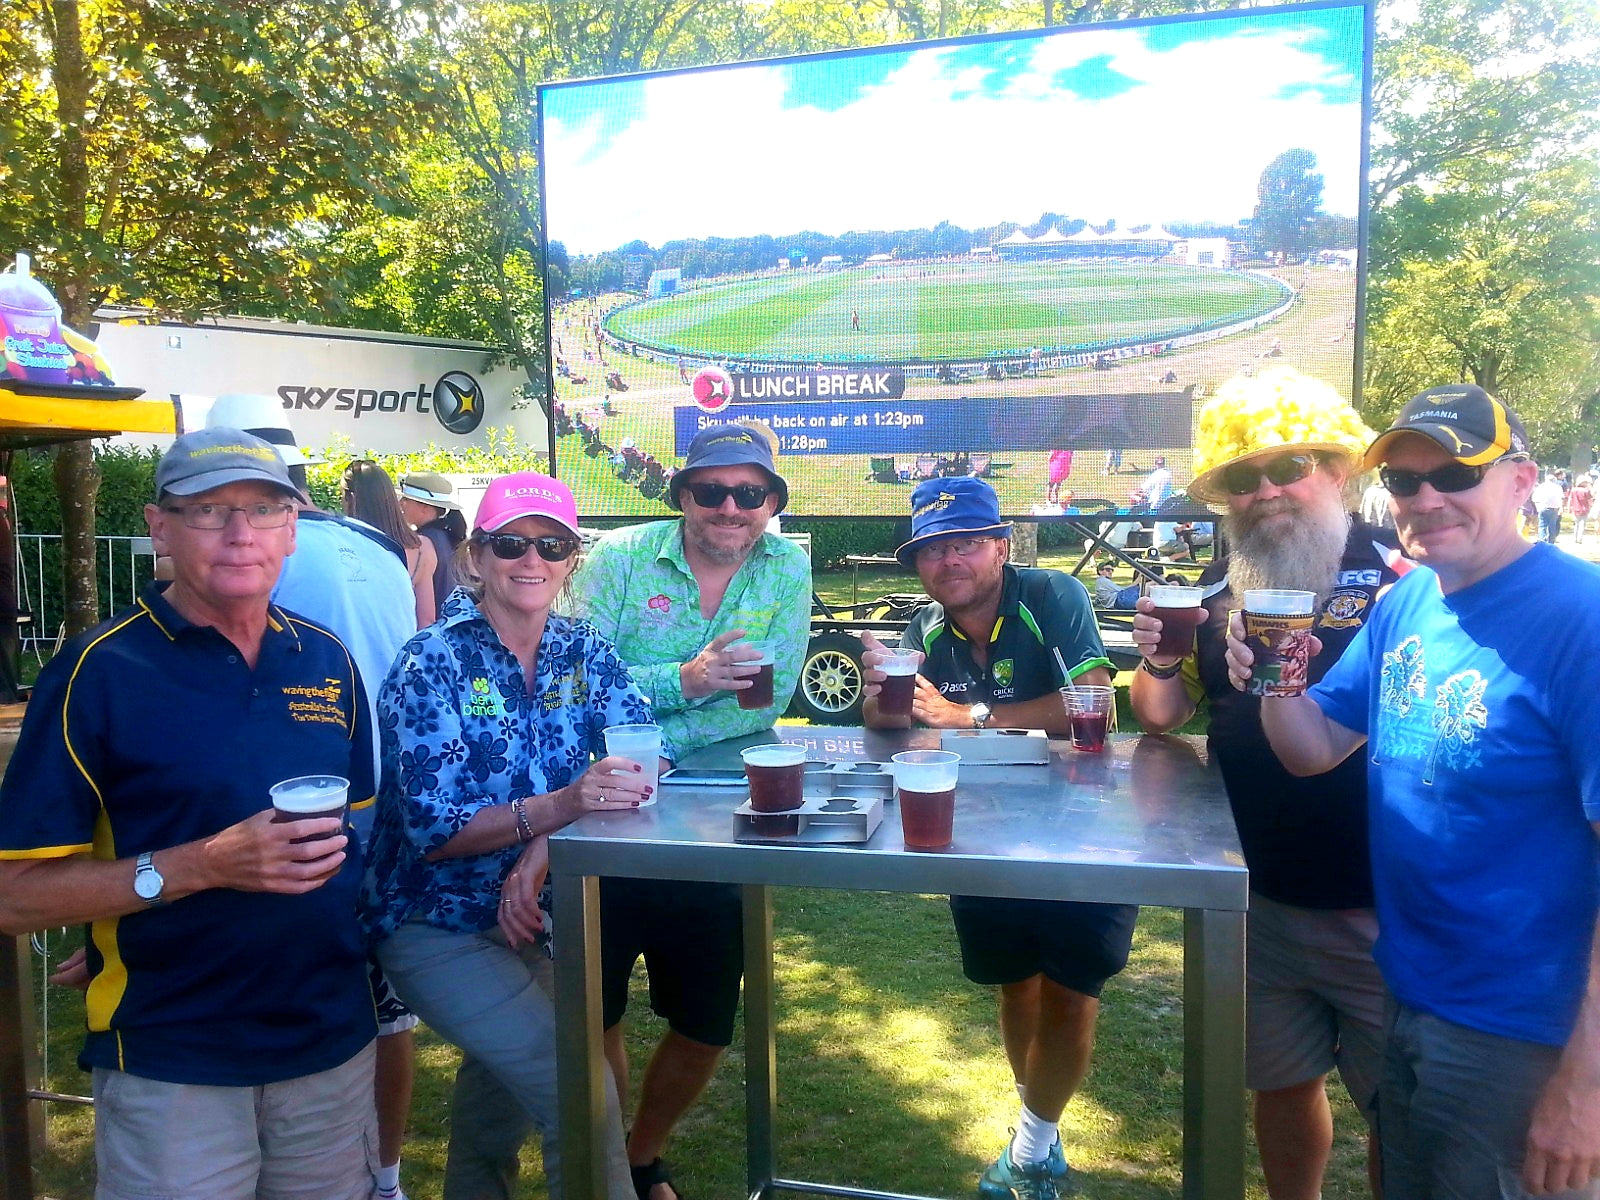 Australian Cricket Tours - Australian Cricket Tourists Standing 'Down The Back' Of The Embankment At A Table, Drinking Beer At Hagley Oval, Christchurch, New Zealand